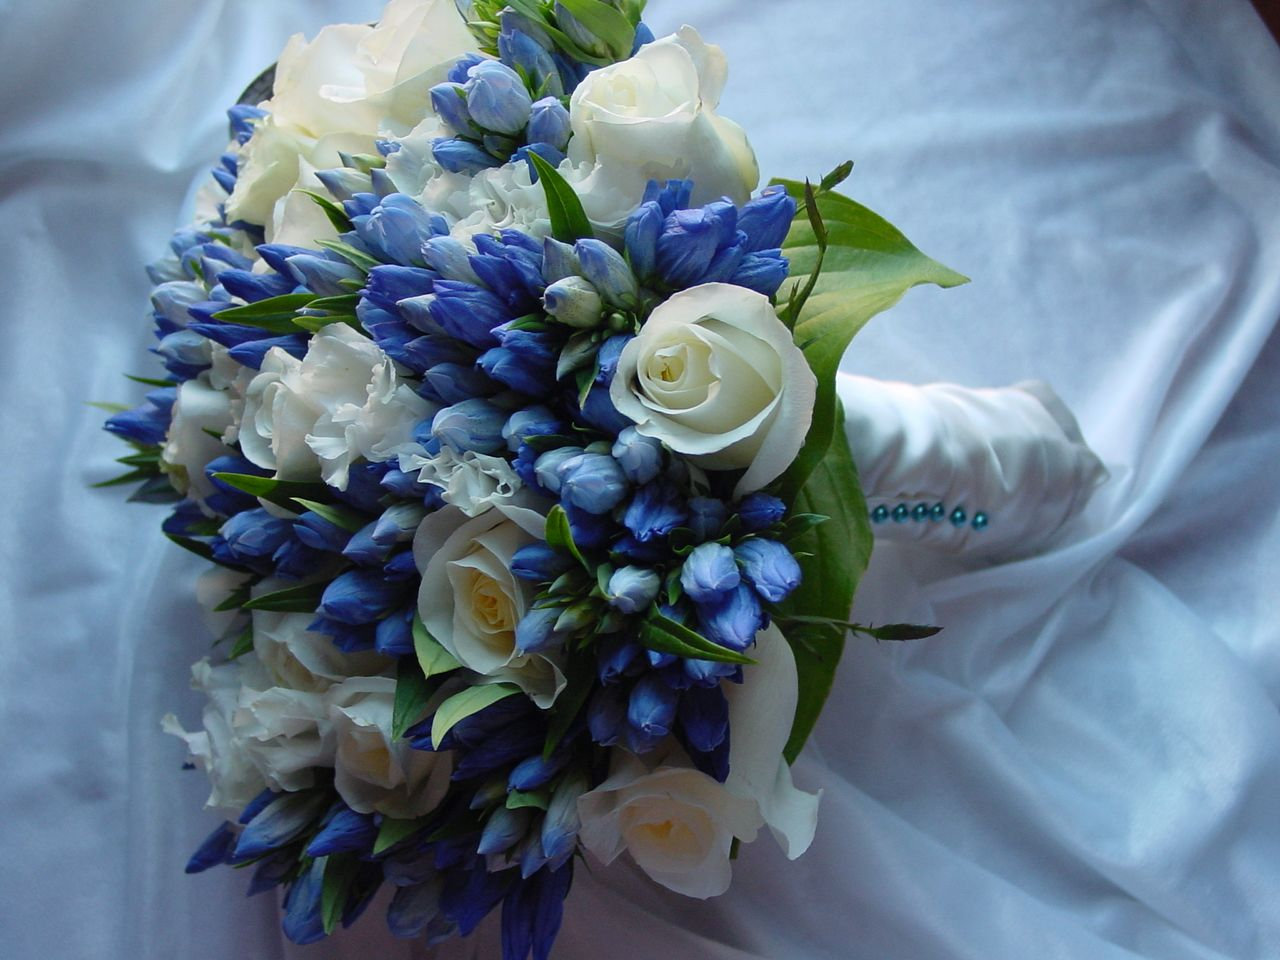 Blue wedding bouquets ideas inspirations blue bridal bridal blue wedding bouquets ideas inspirations junglespirit